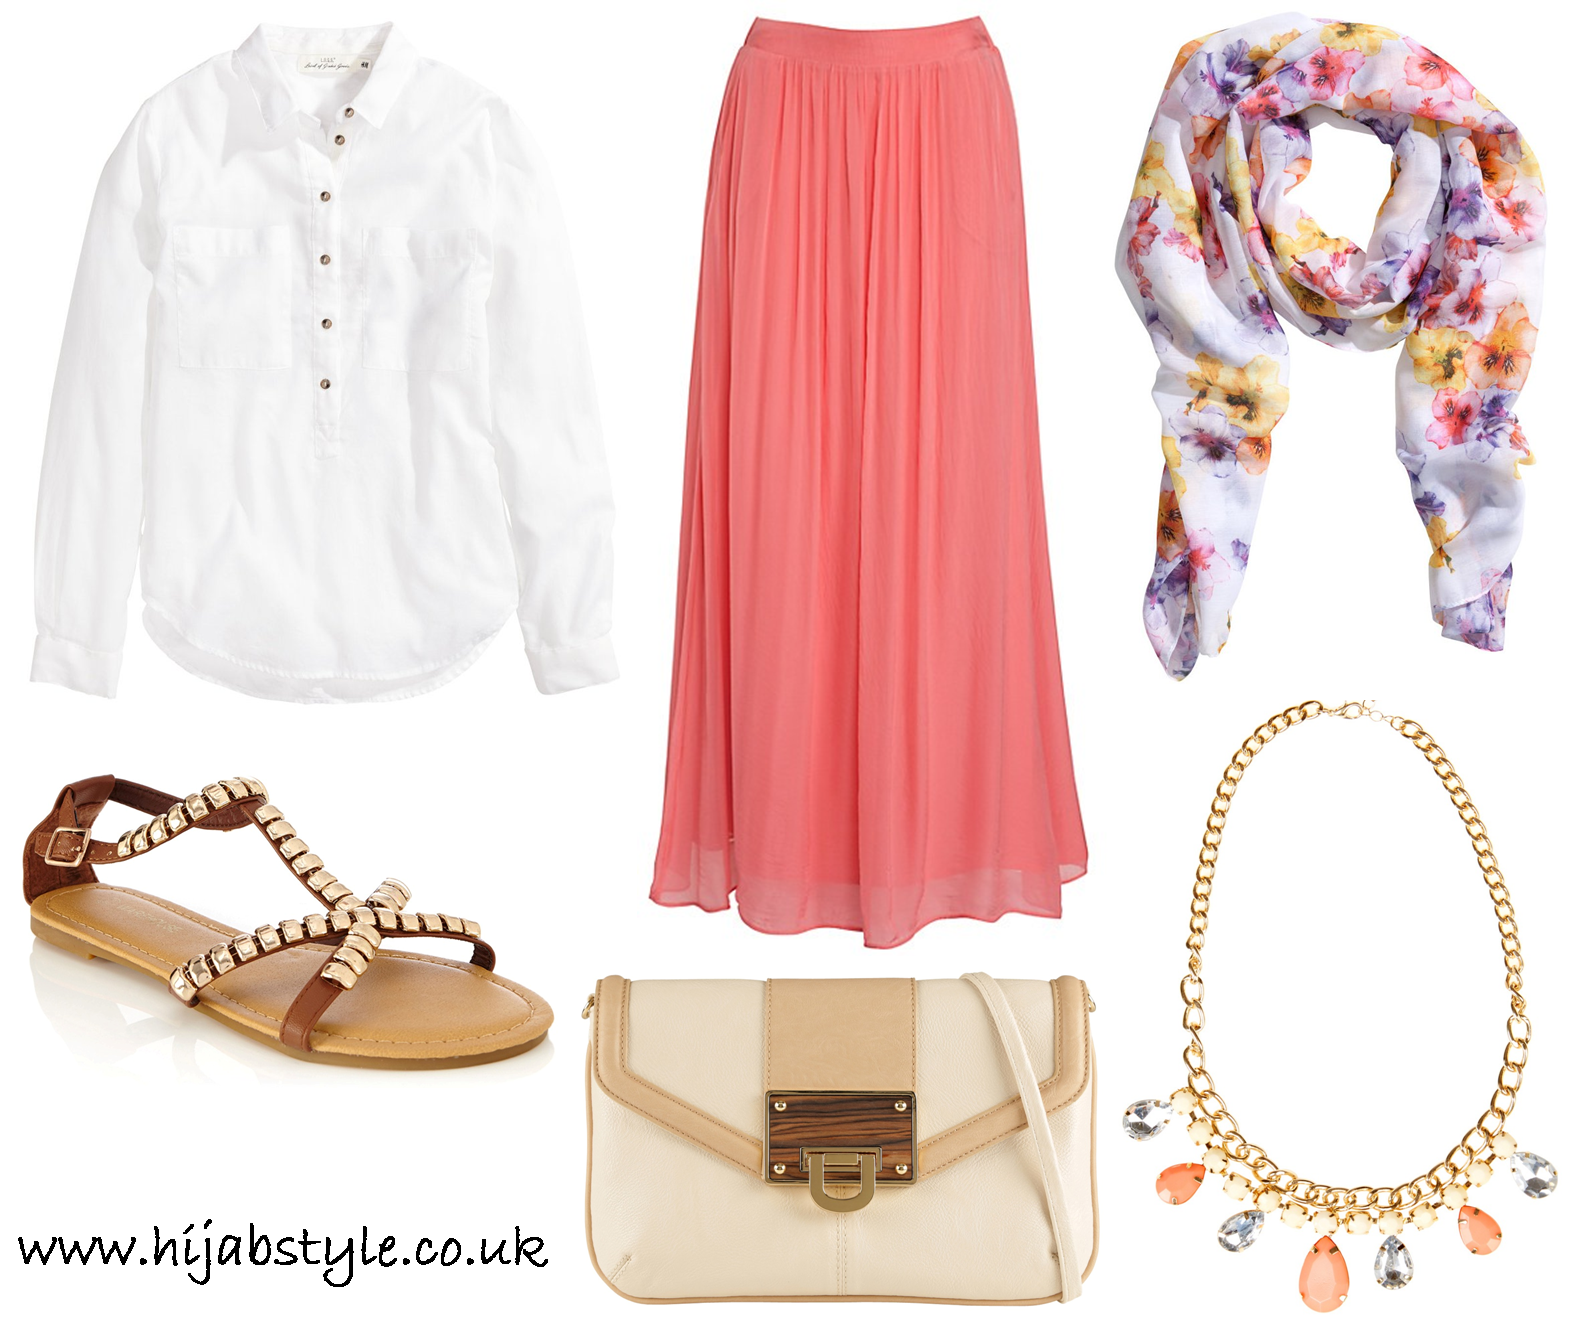 Pair with a white shirt, maxi skirt, floral hijab and flat sandals - Modest White Shirt Outfit